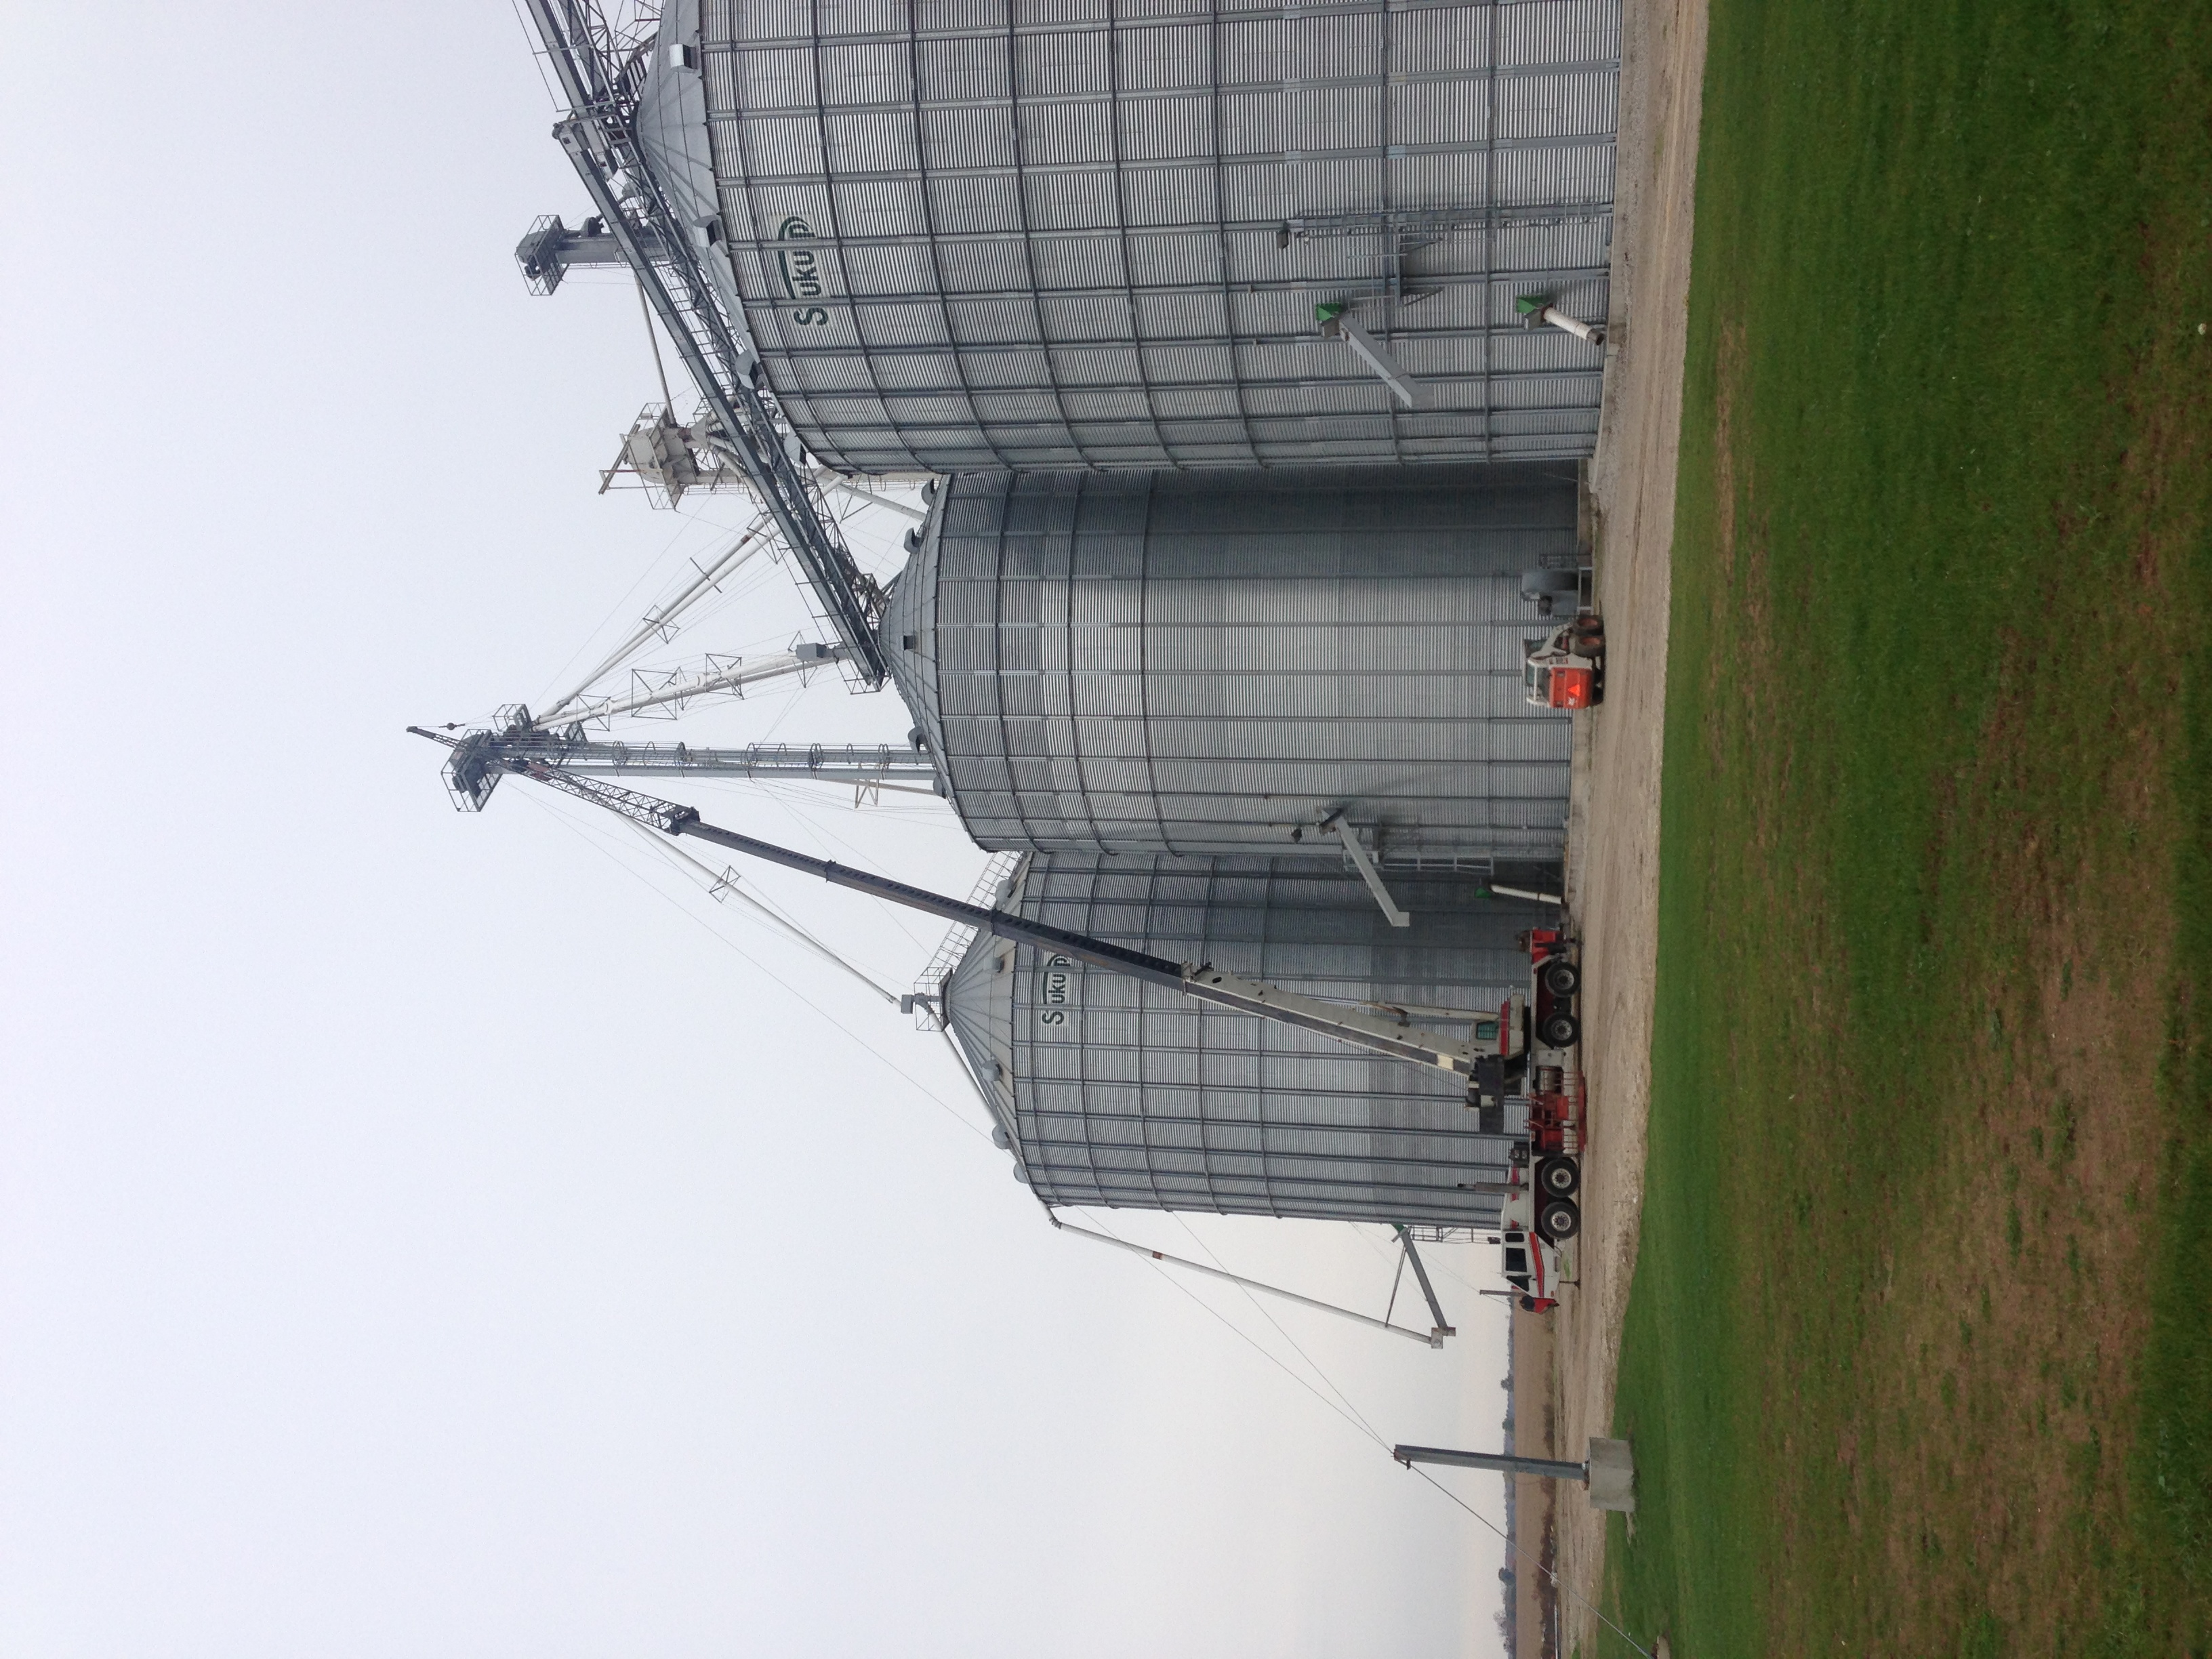 Spout for grain bin being hoisted by 75 ton crane